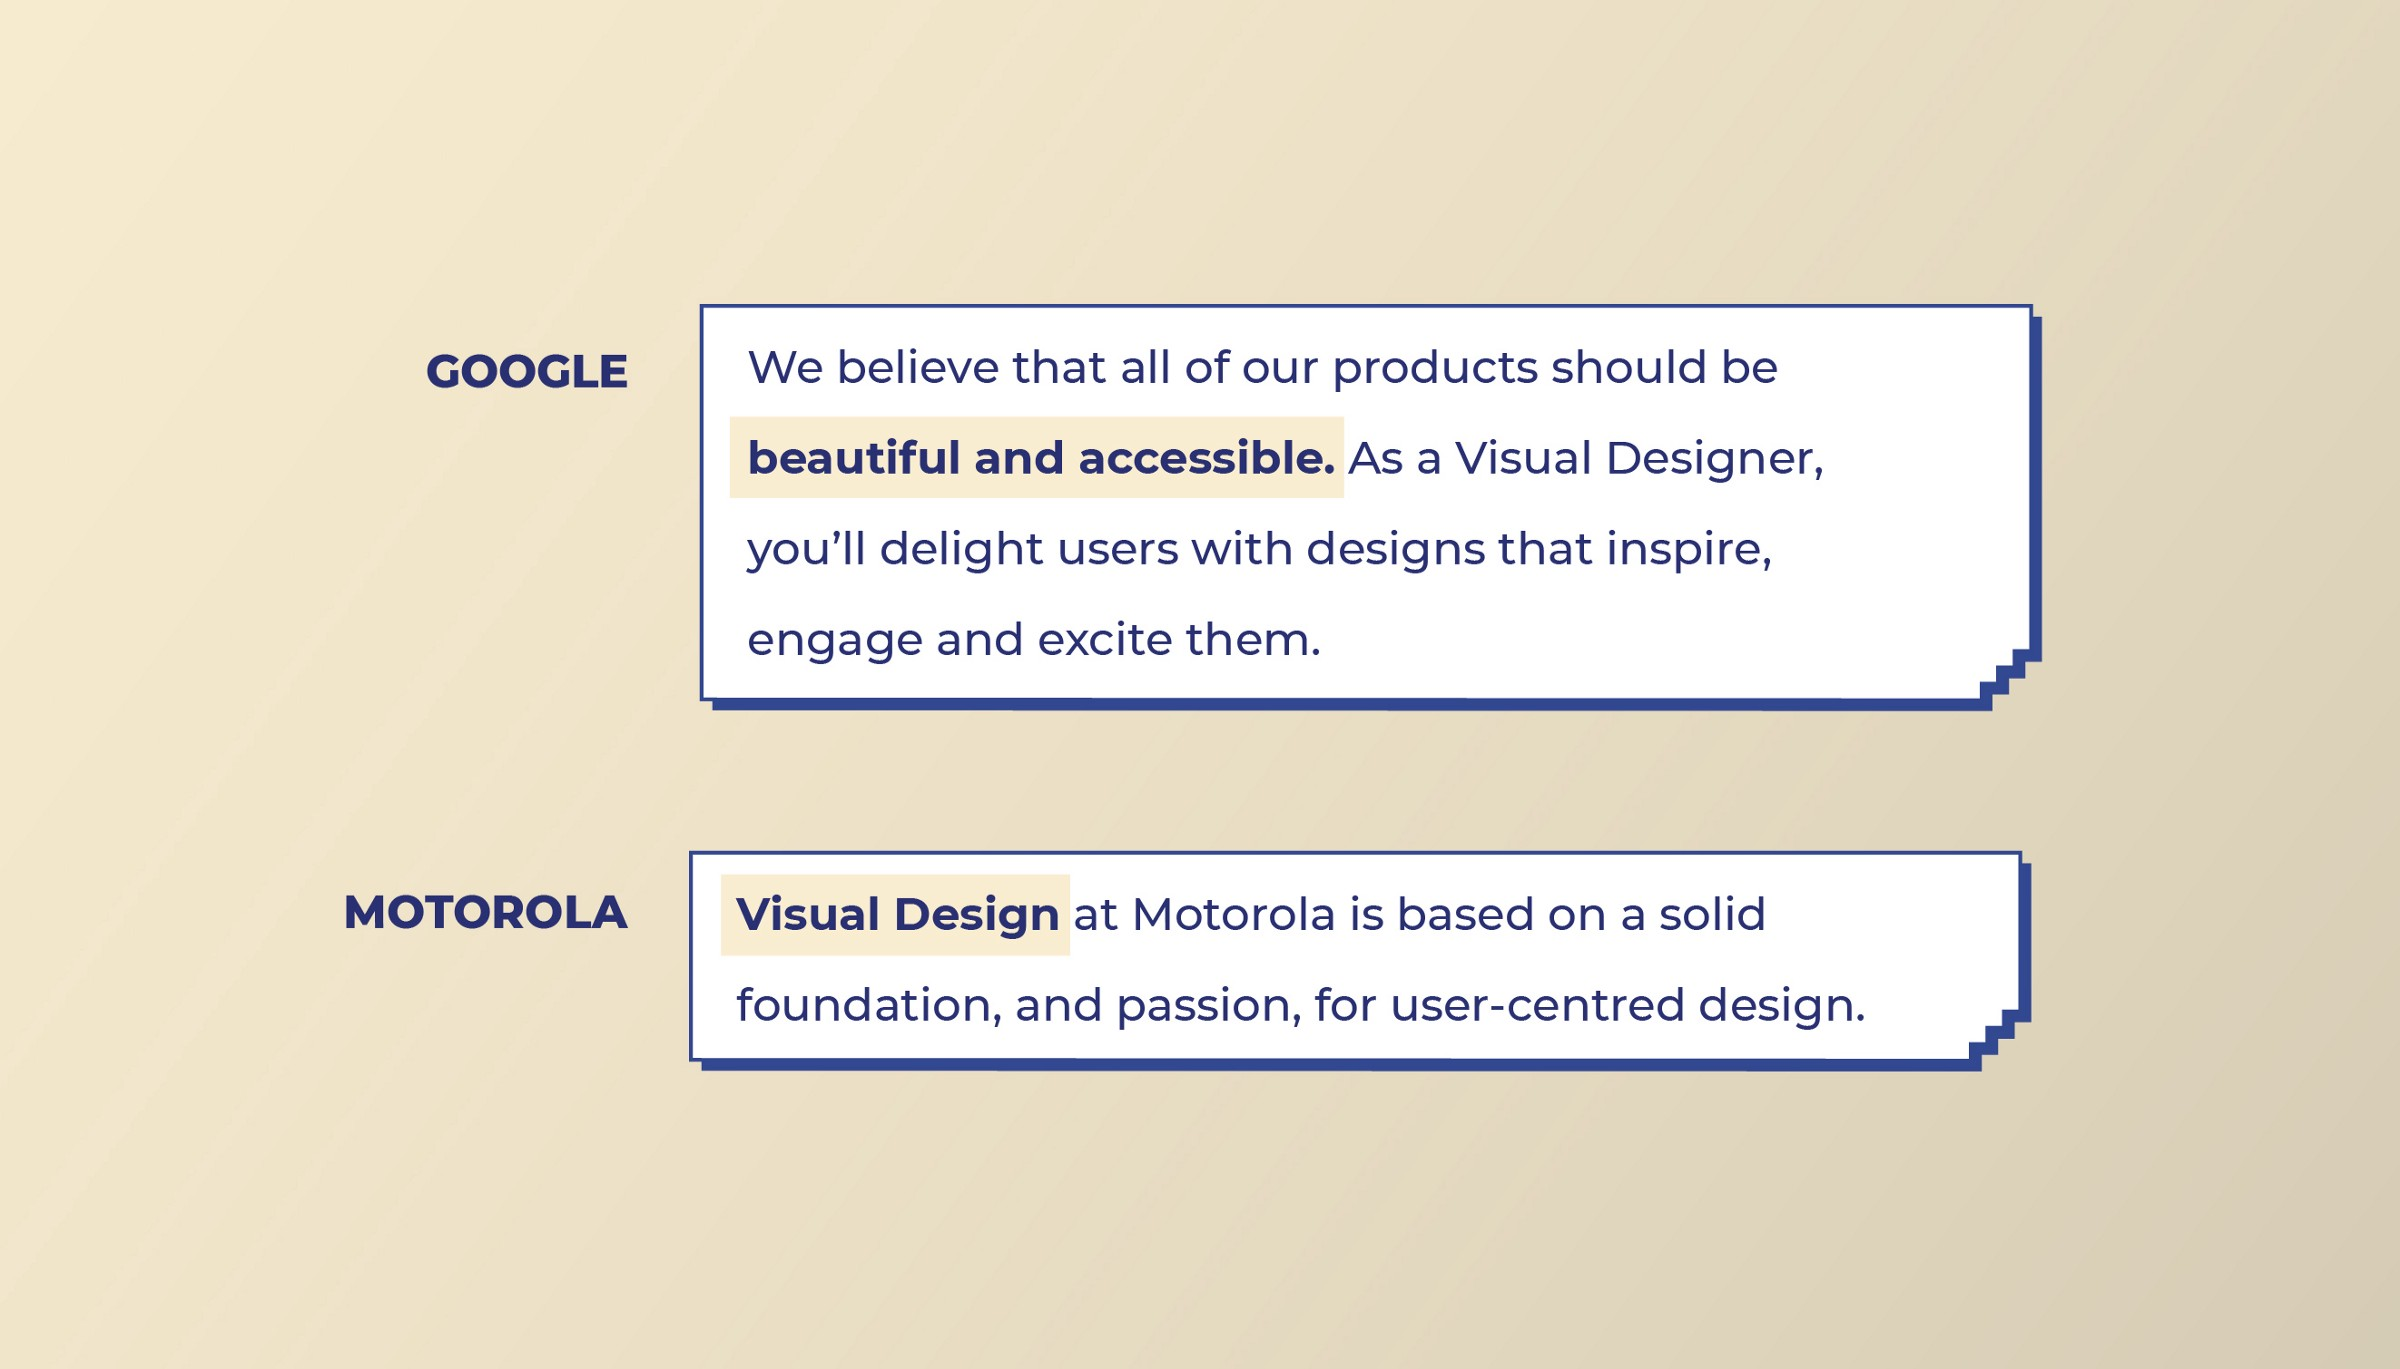 Google and Motorola look for Visual Design skills from Visual designers